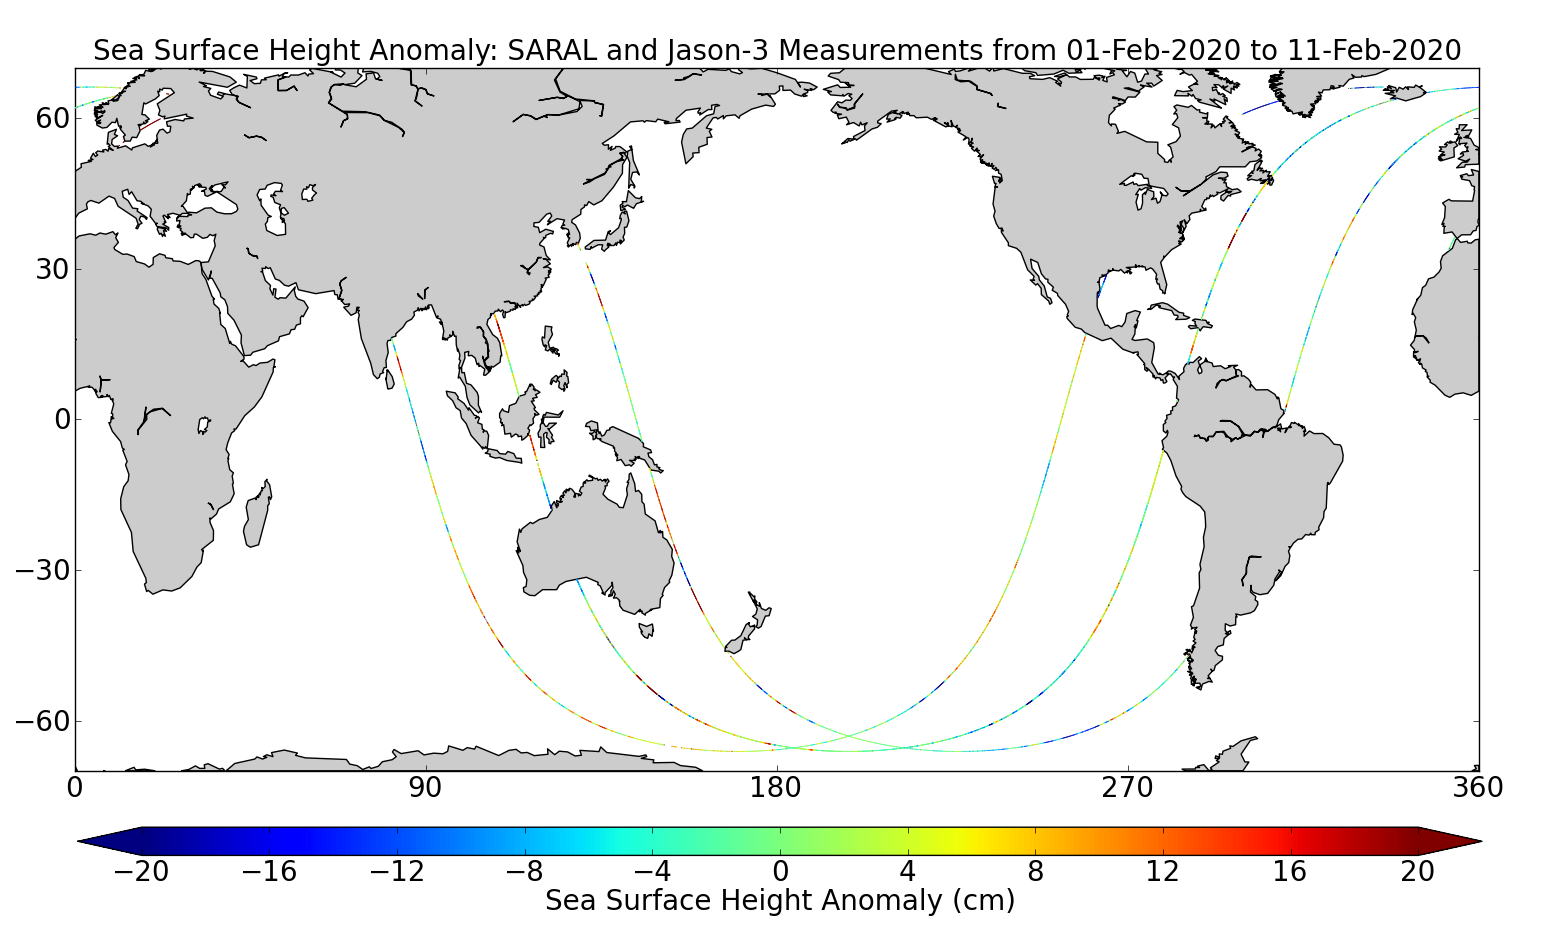 Sea Surface Height Anomaly: SARAL and Jason-3 Measurements from 01-Feb-2020 to 11-Feb-2020